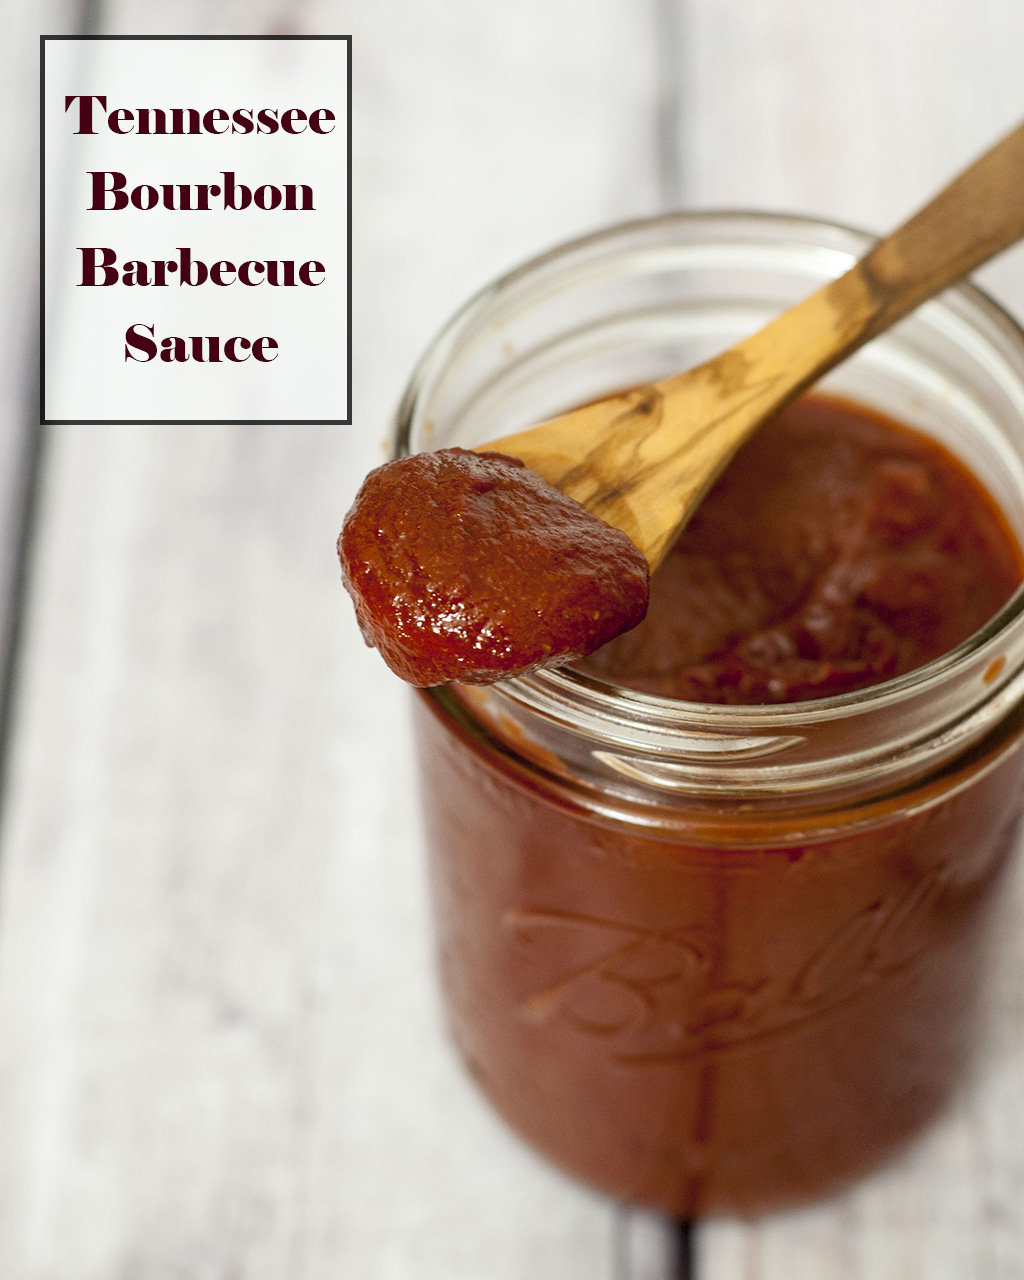 tennessee-bourbon-barbecue-sauce-text